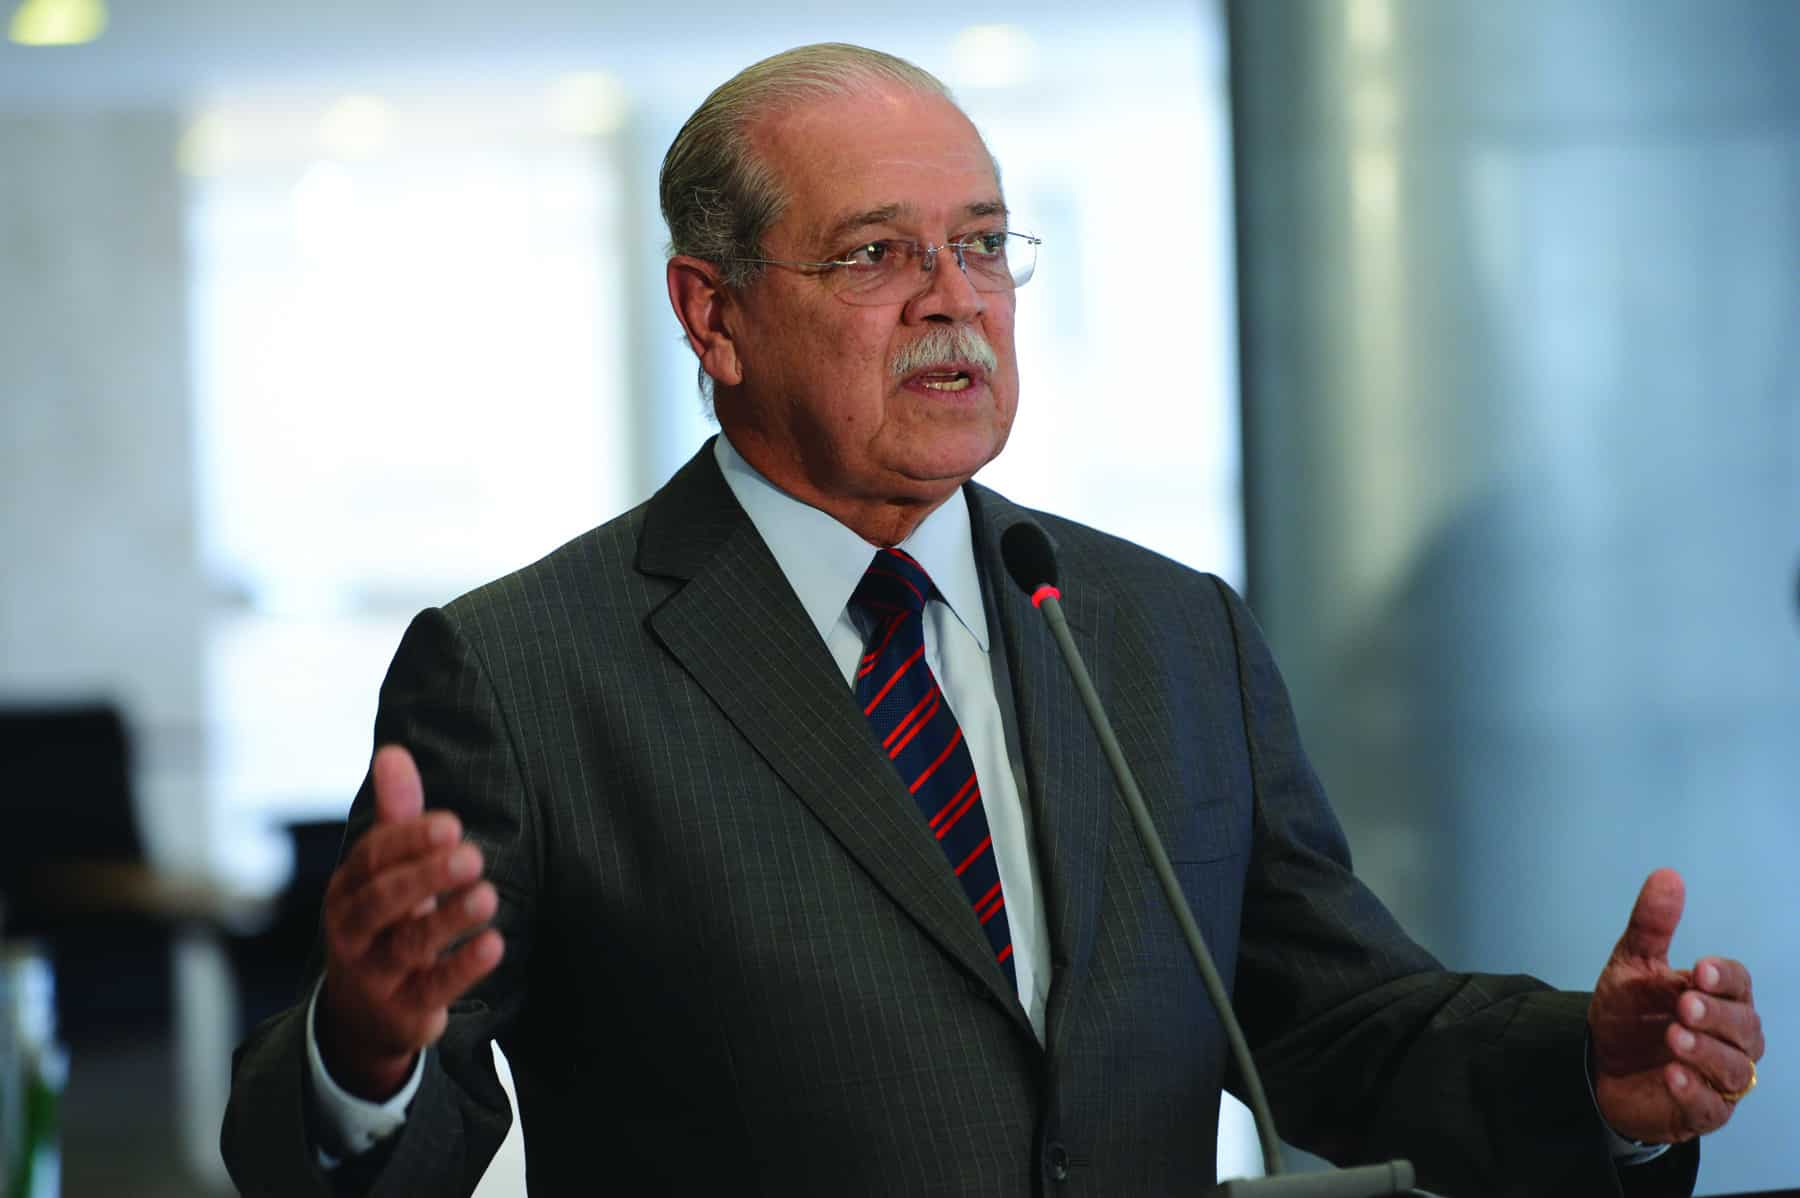 Brazil plays politics again with port minister appointment